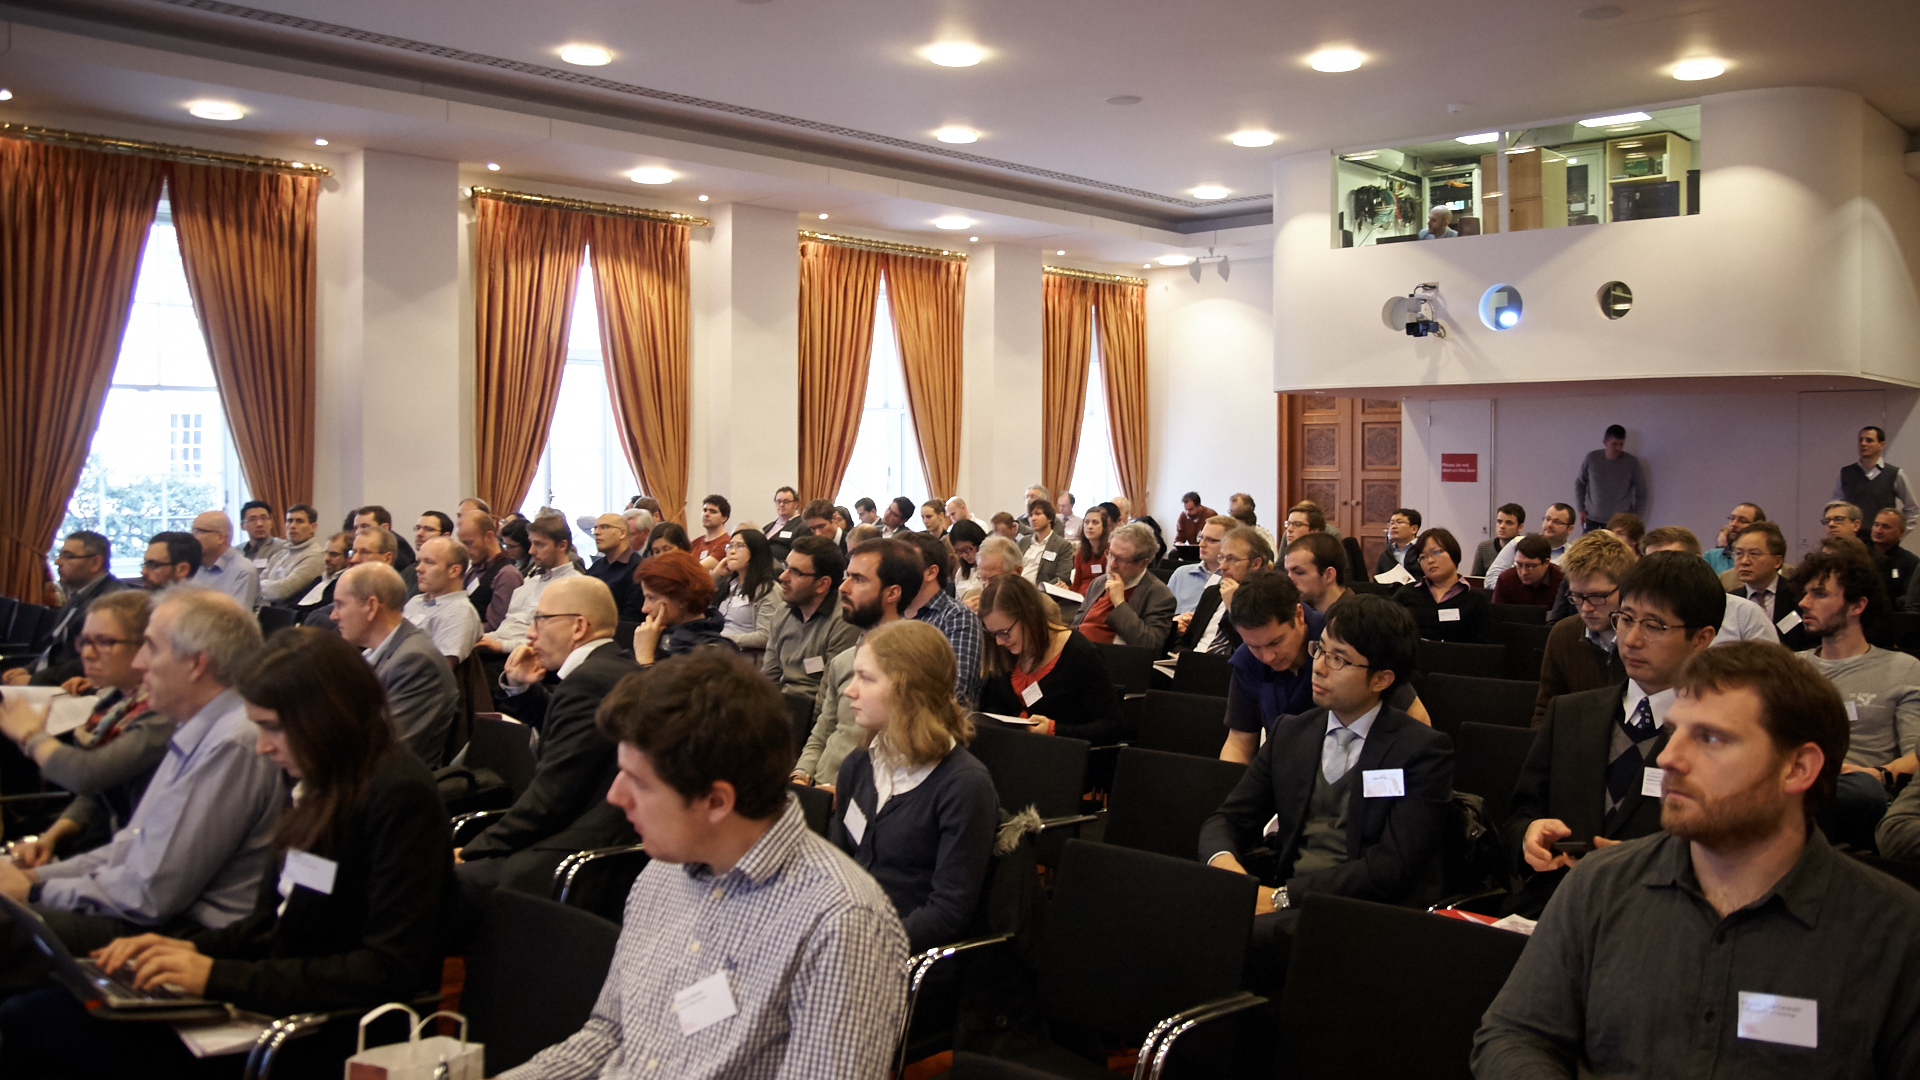 Attendees at the Royal Society Discussion meeting 'The challenges of hydrogen and metals', Jan 2017